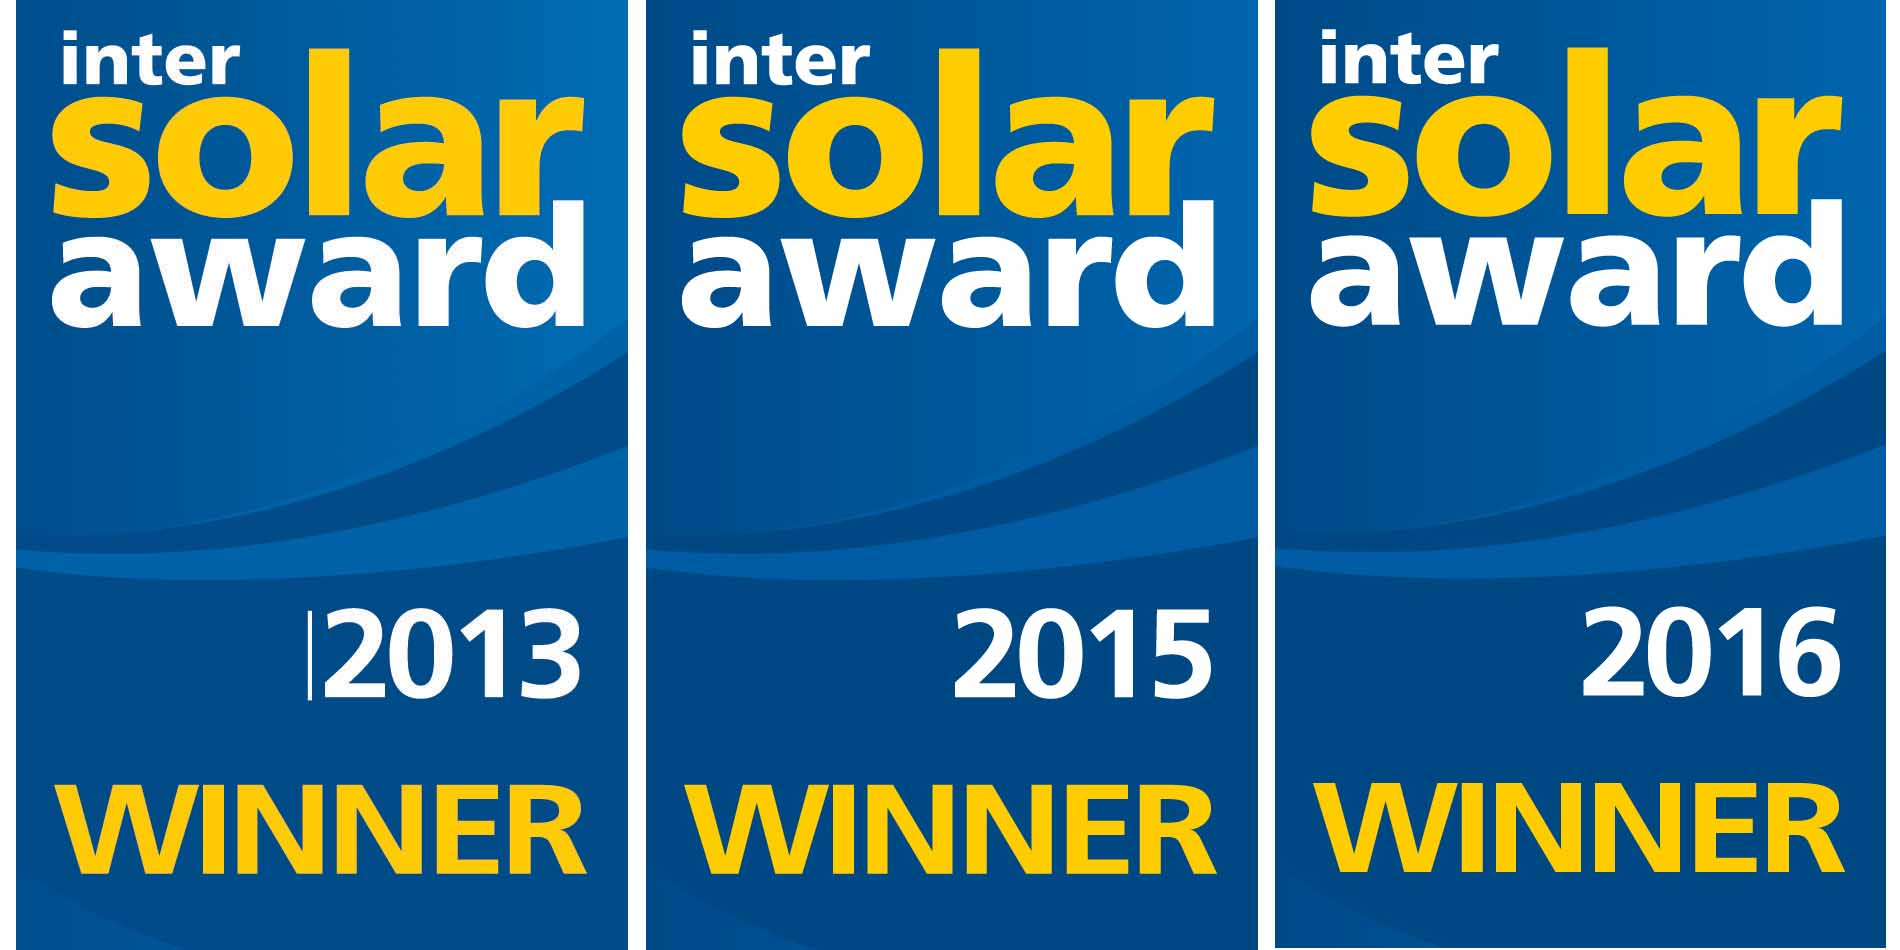 InterSolar-Award_ 2013, 2015 & 2016 LG NeOn R Solar Modules